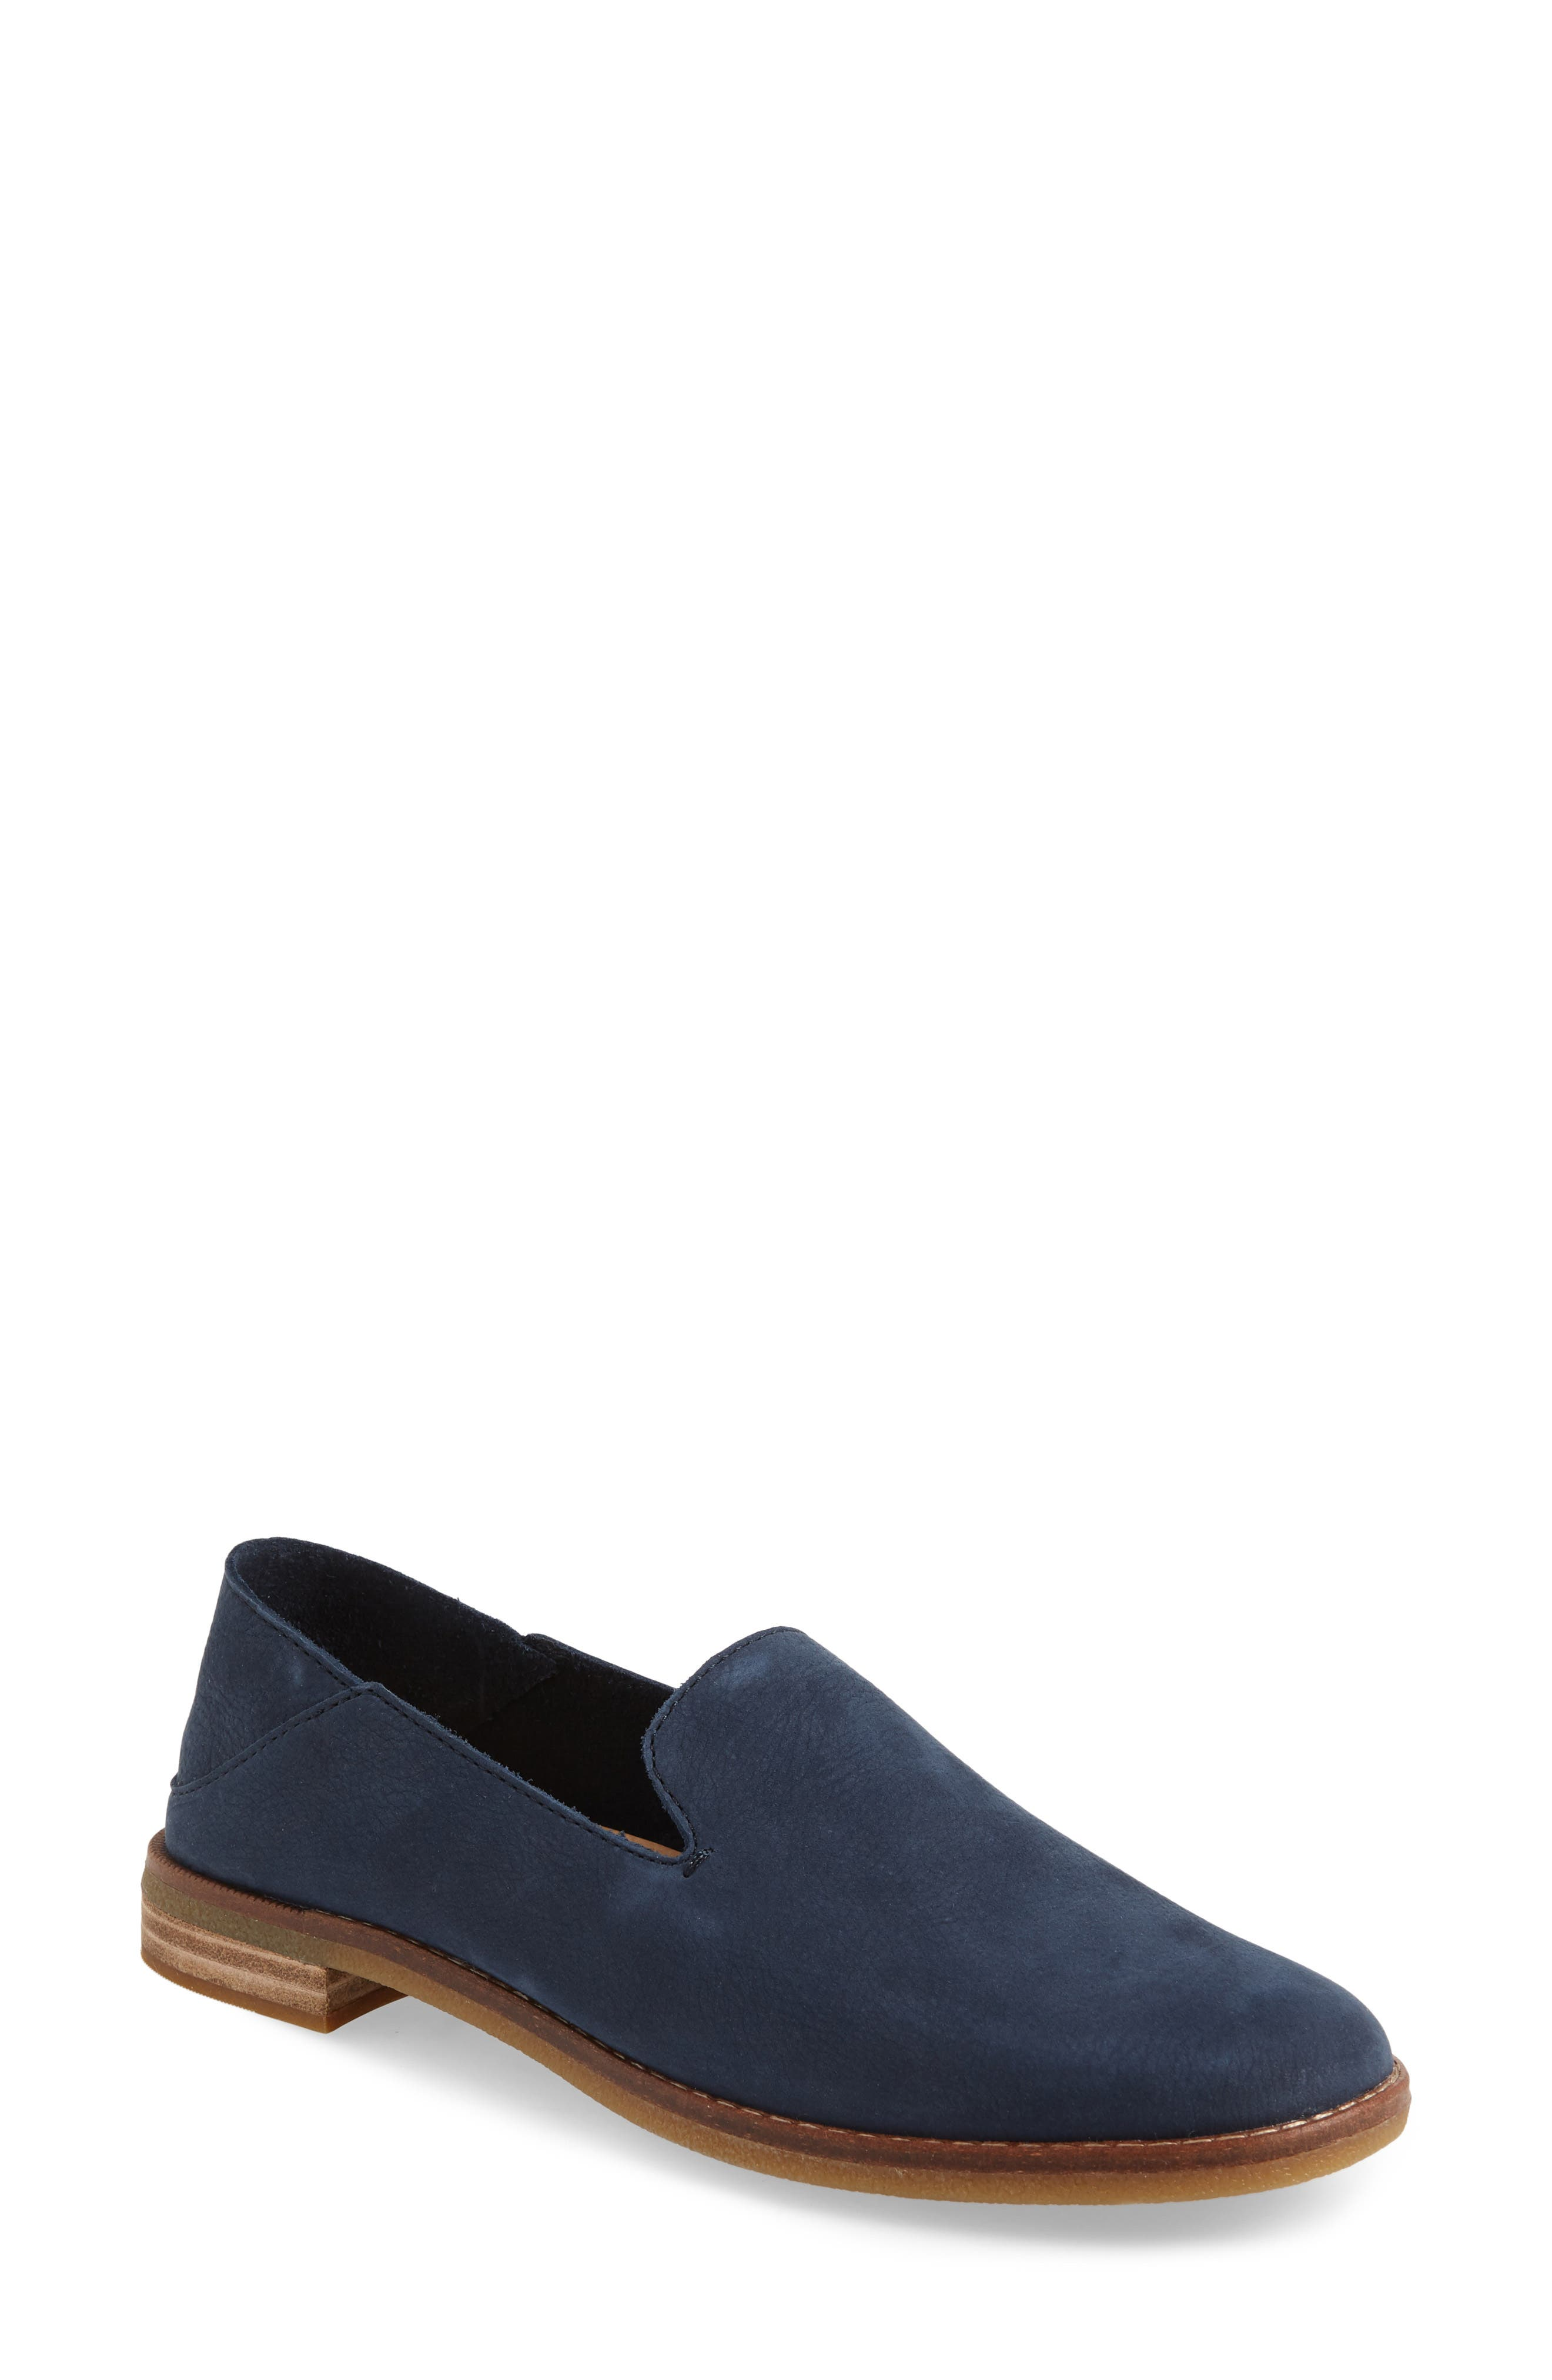 Seaport Levy Flat,                             Main thumbnail 1, color,                             NAVY LEATHER